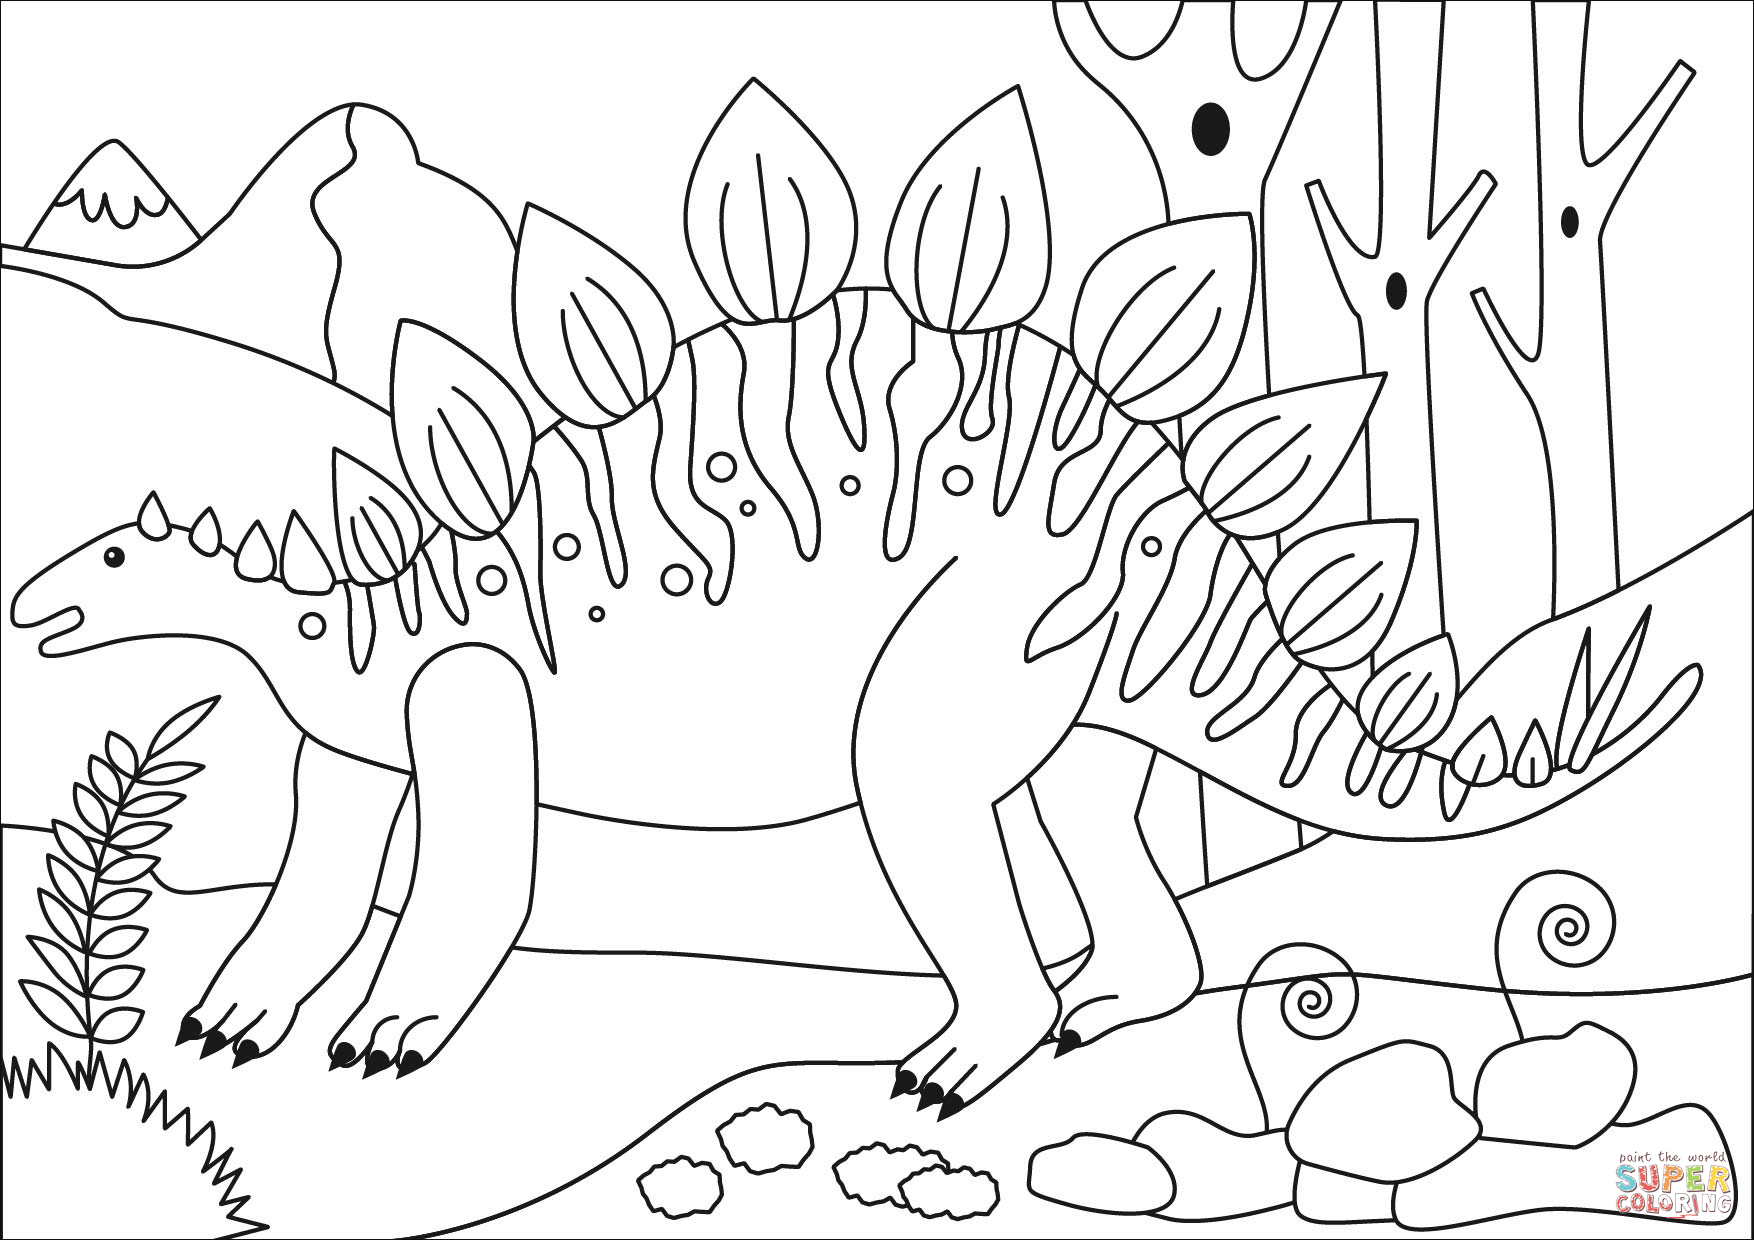 stegosaurus pictures to color stegosaurus drawing at getdrawings free download pictures to color stegosaurus